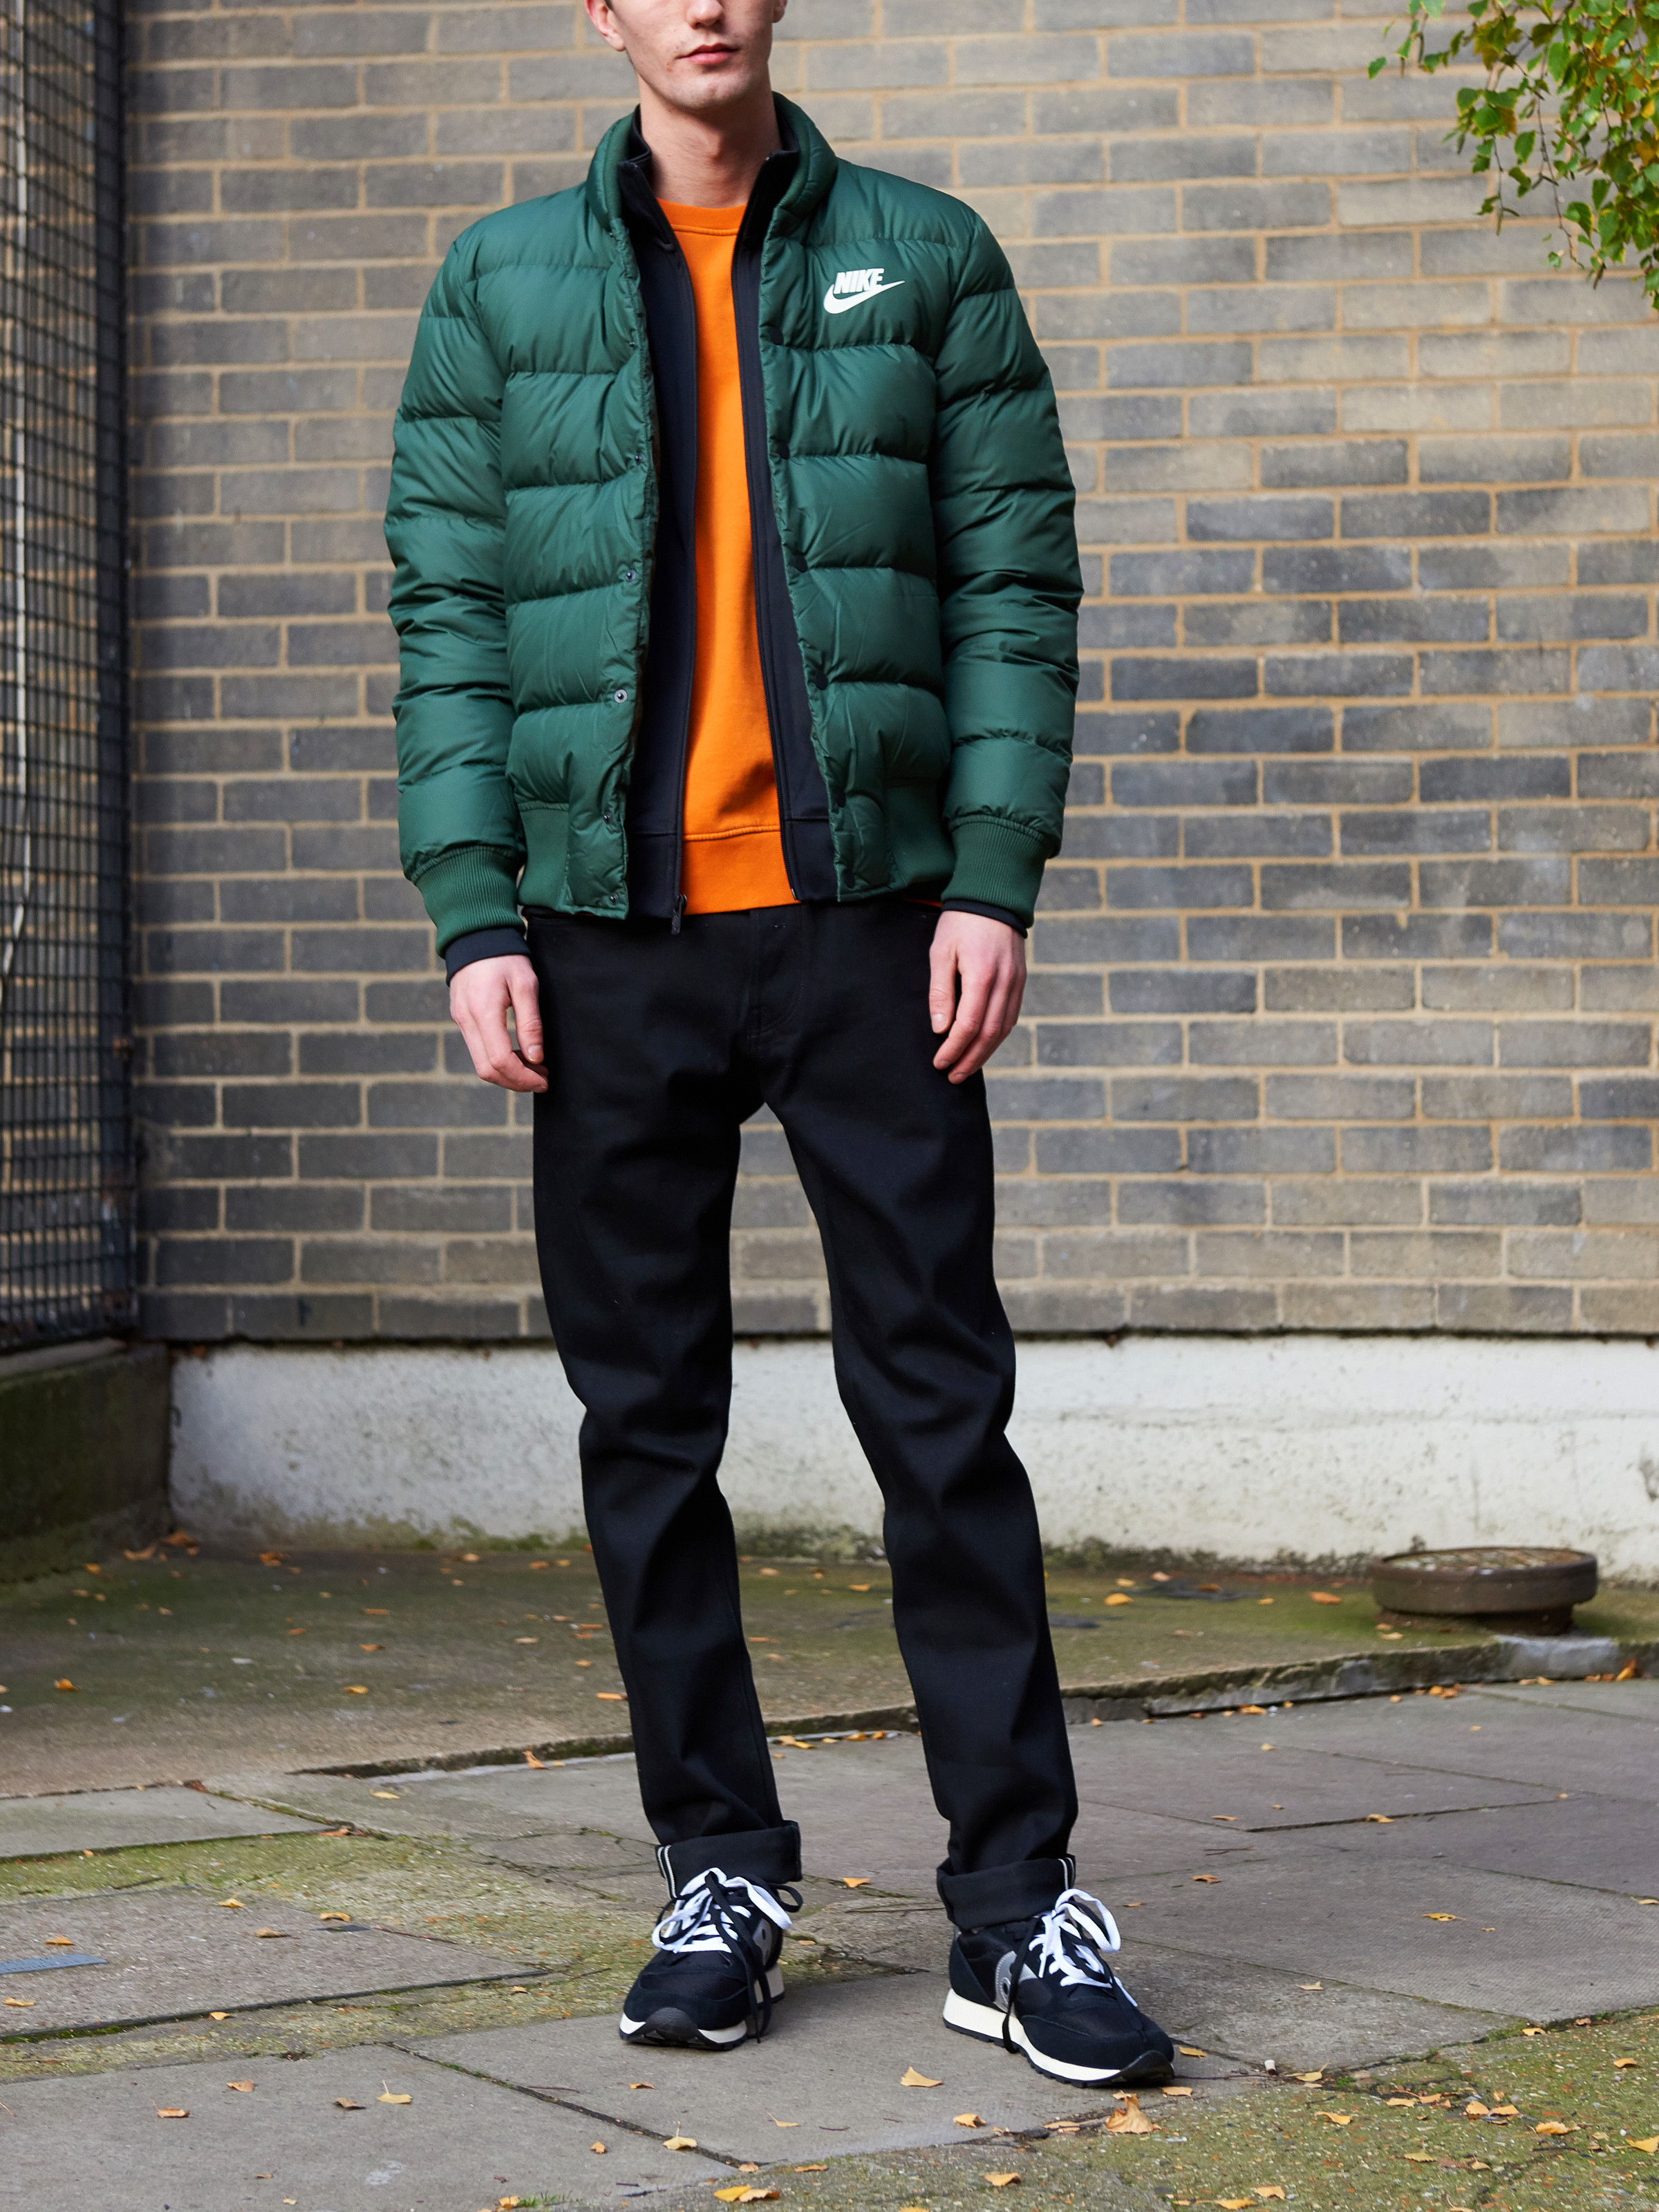 Men's outfit idea for 2021 with quilted jacket, navy varsity / track jacket, bold-colored sweatshirt, black jeans, neutral sneakers. Suitable for fall and winter.